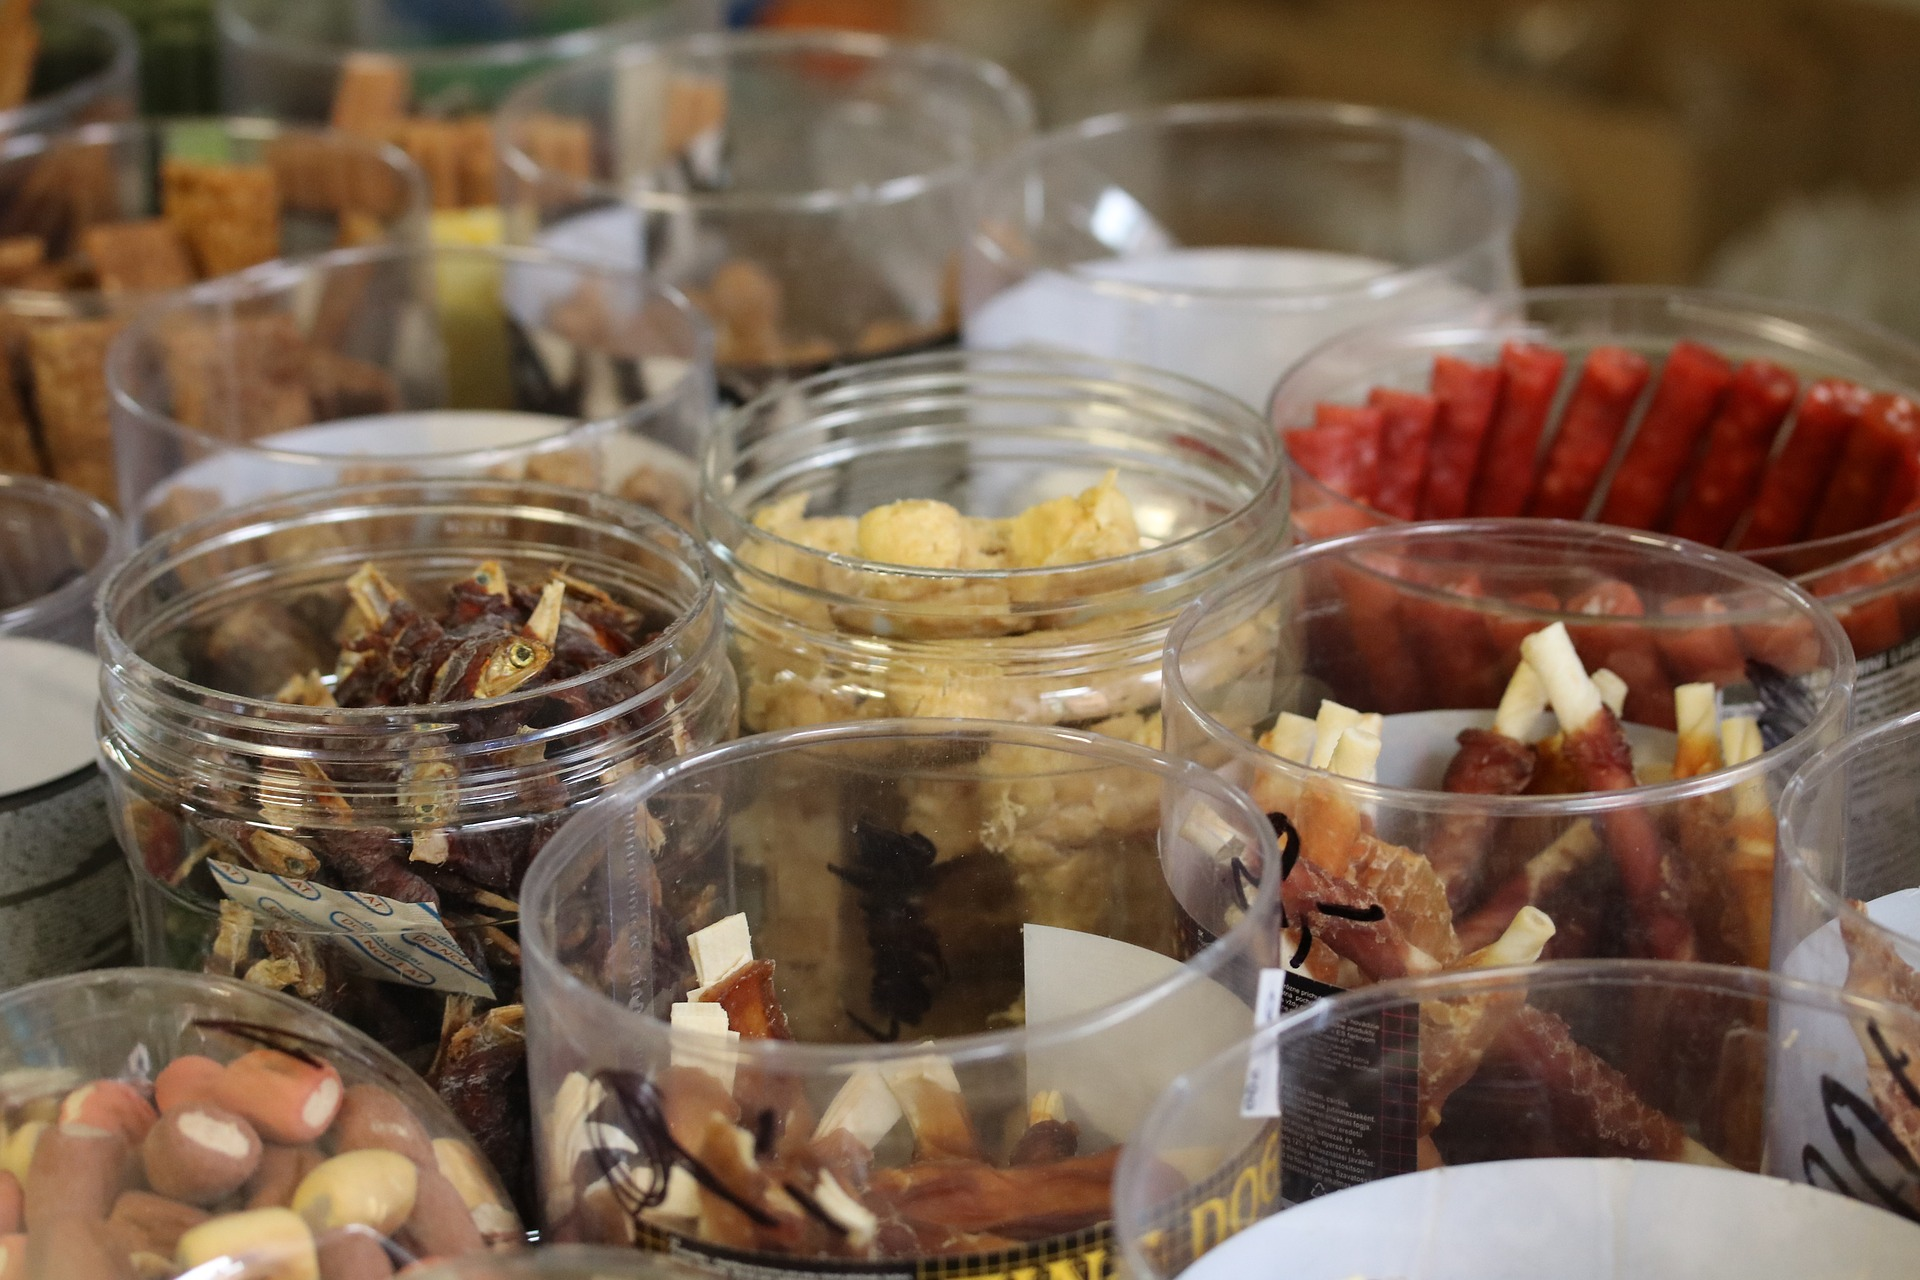 Variety of dog treats in containers